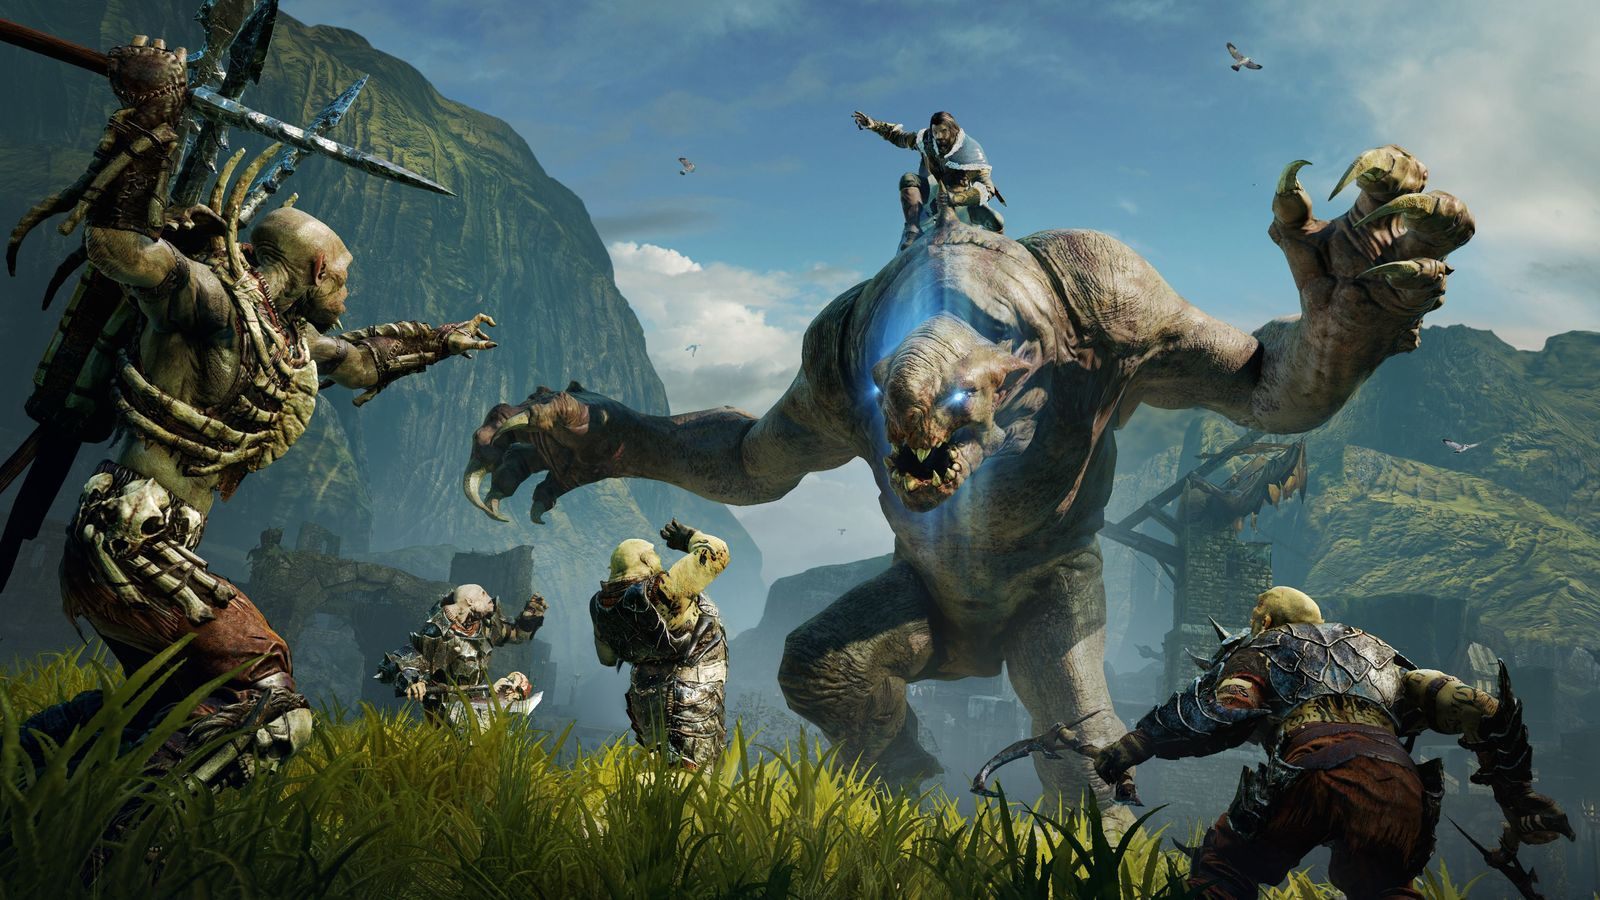 Middle-earth: Shadow of Mordor provides a clearer road map ...